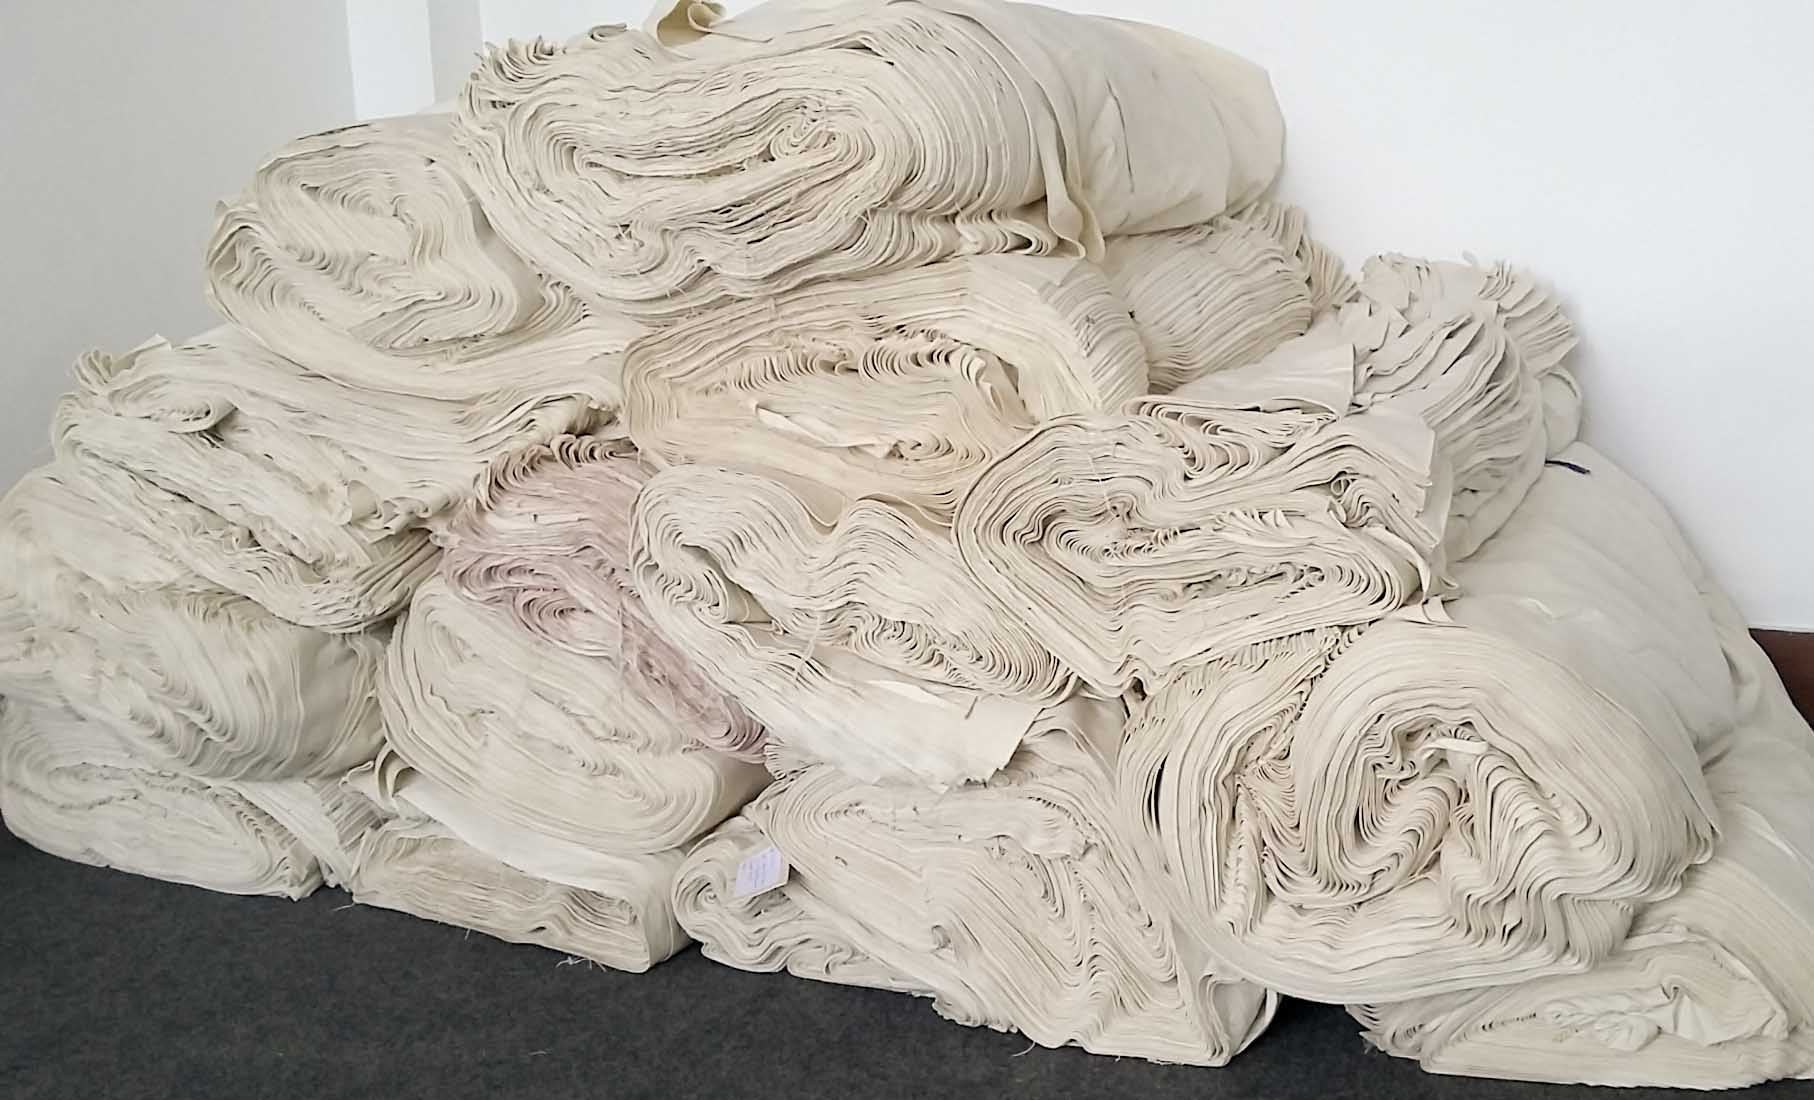 This is what a mile of Nepali cotton canvas looks like!